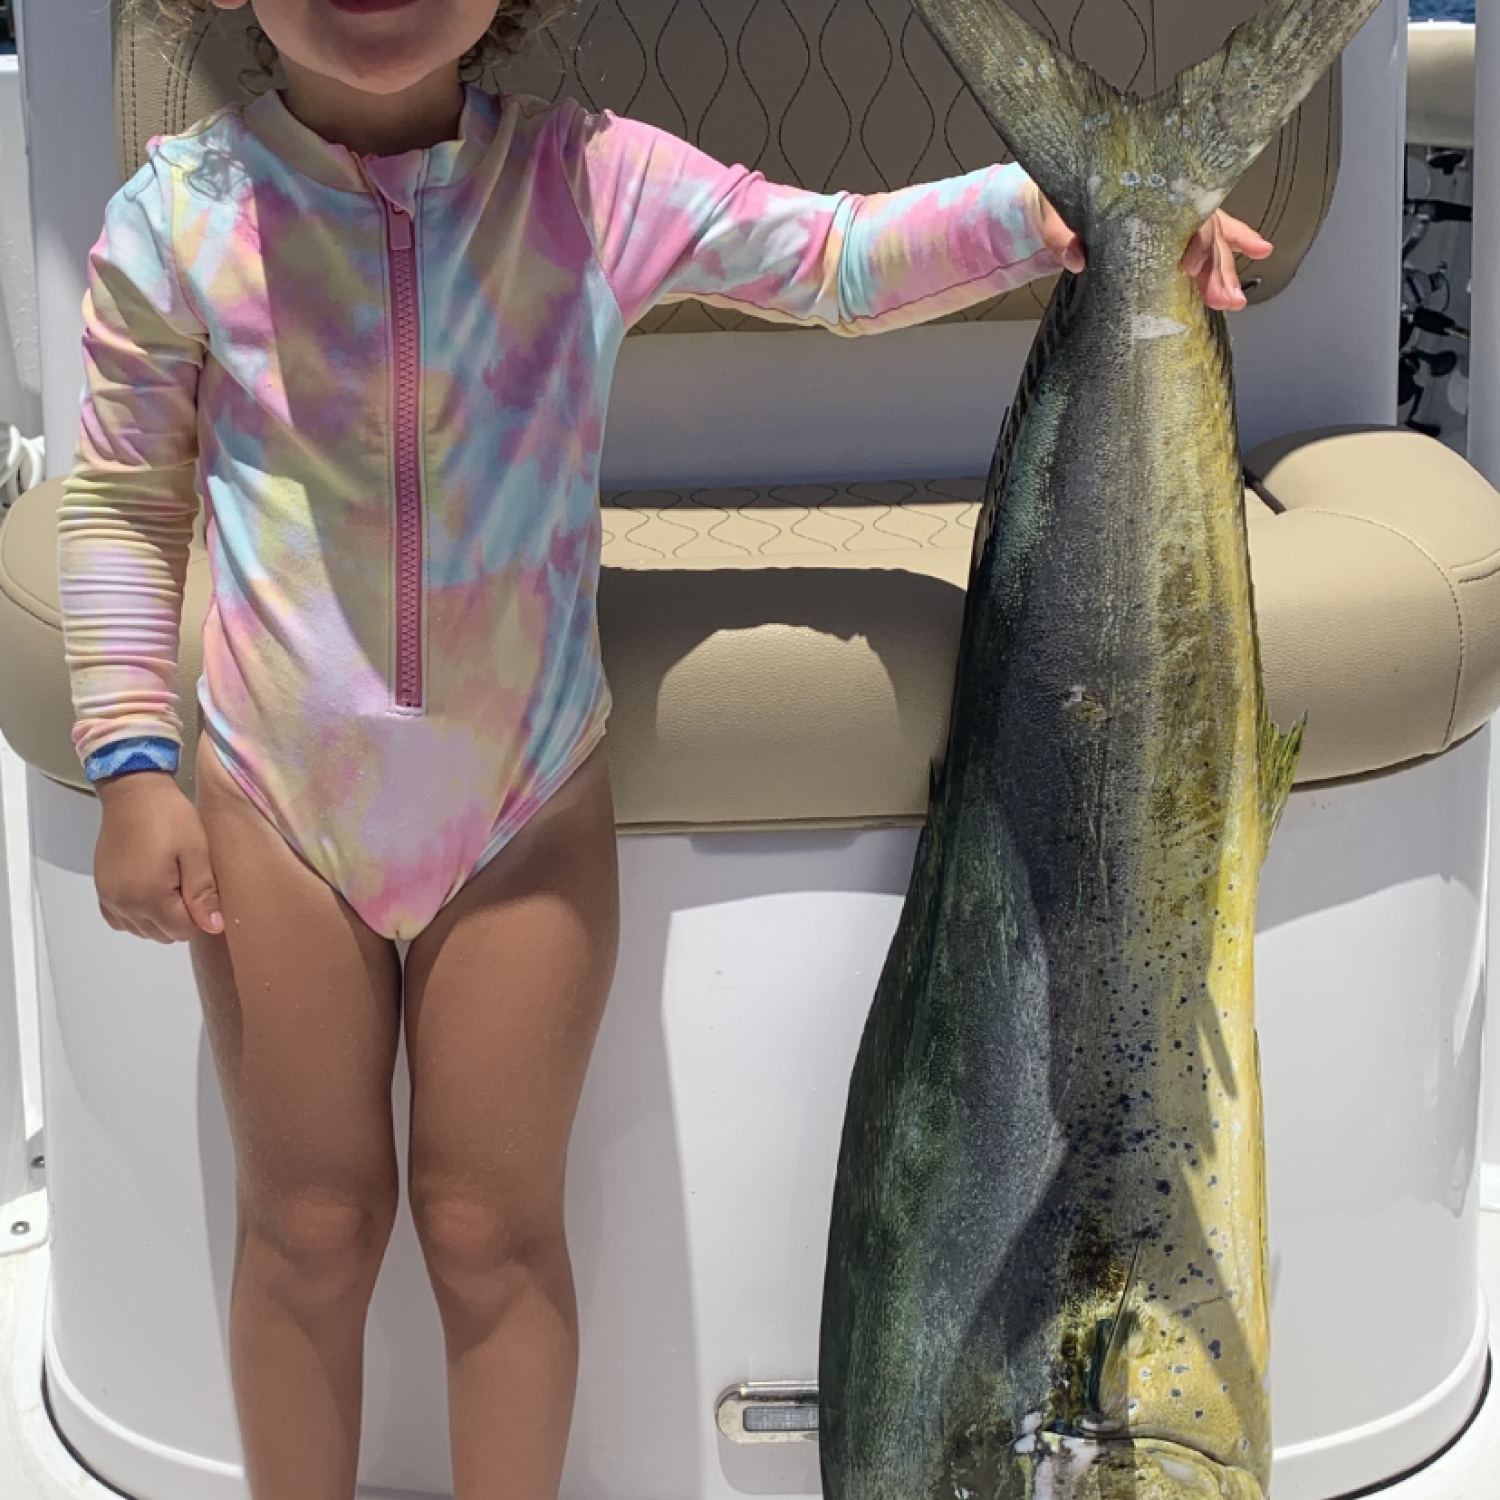 We spent the day fishing offshore and landed a few nice mahi mahi my daughter was amazed they w...